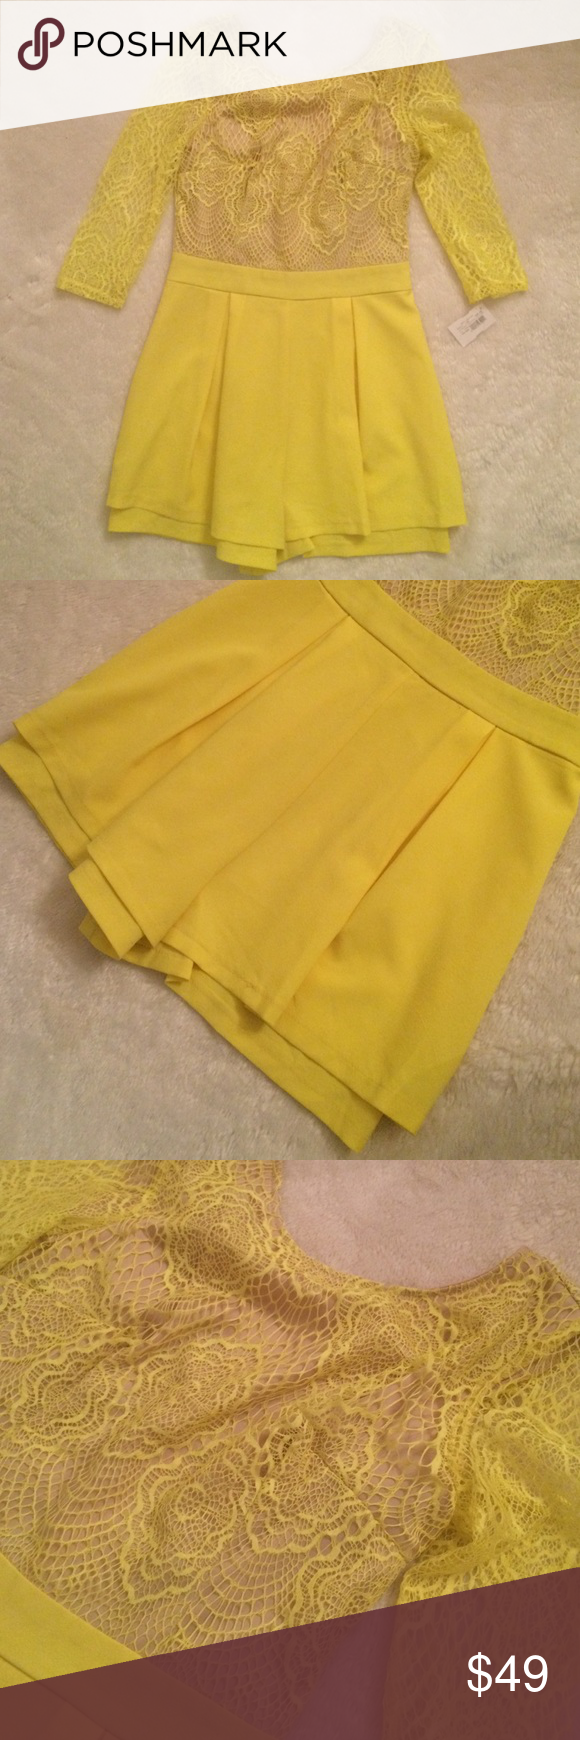 Yellow romper Great condition. Brand new. Yellow lace romper None  Other